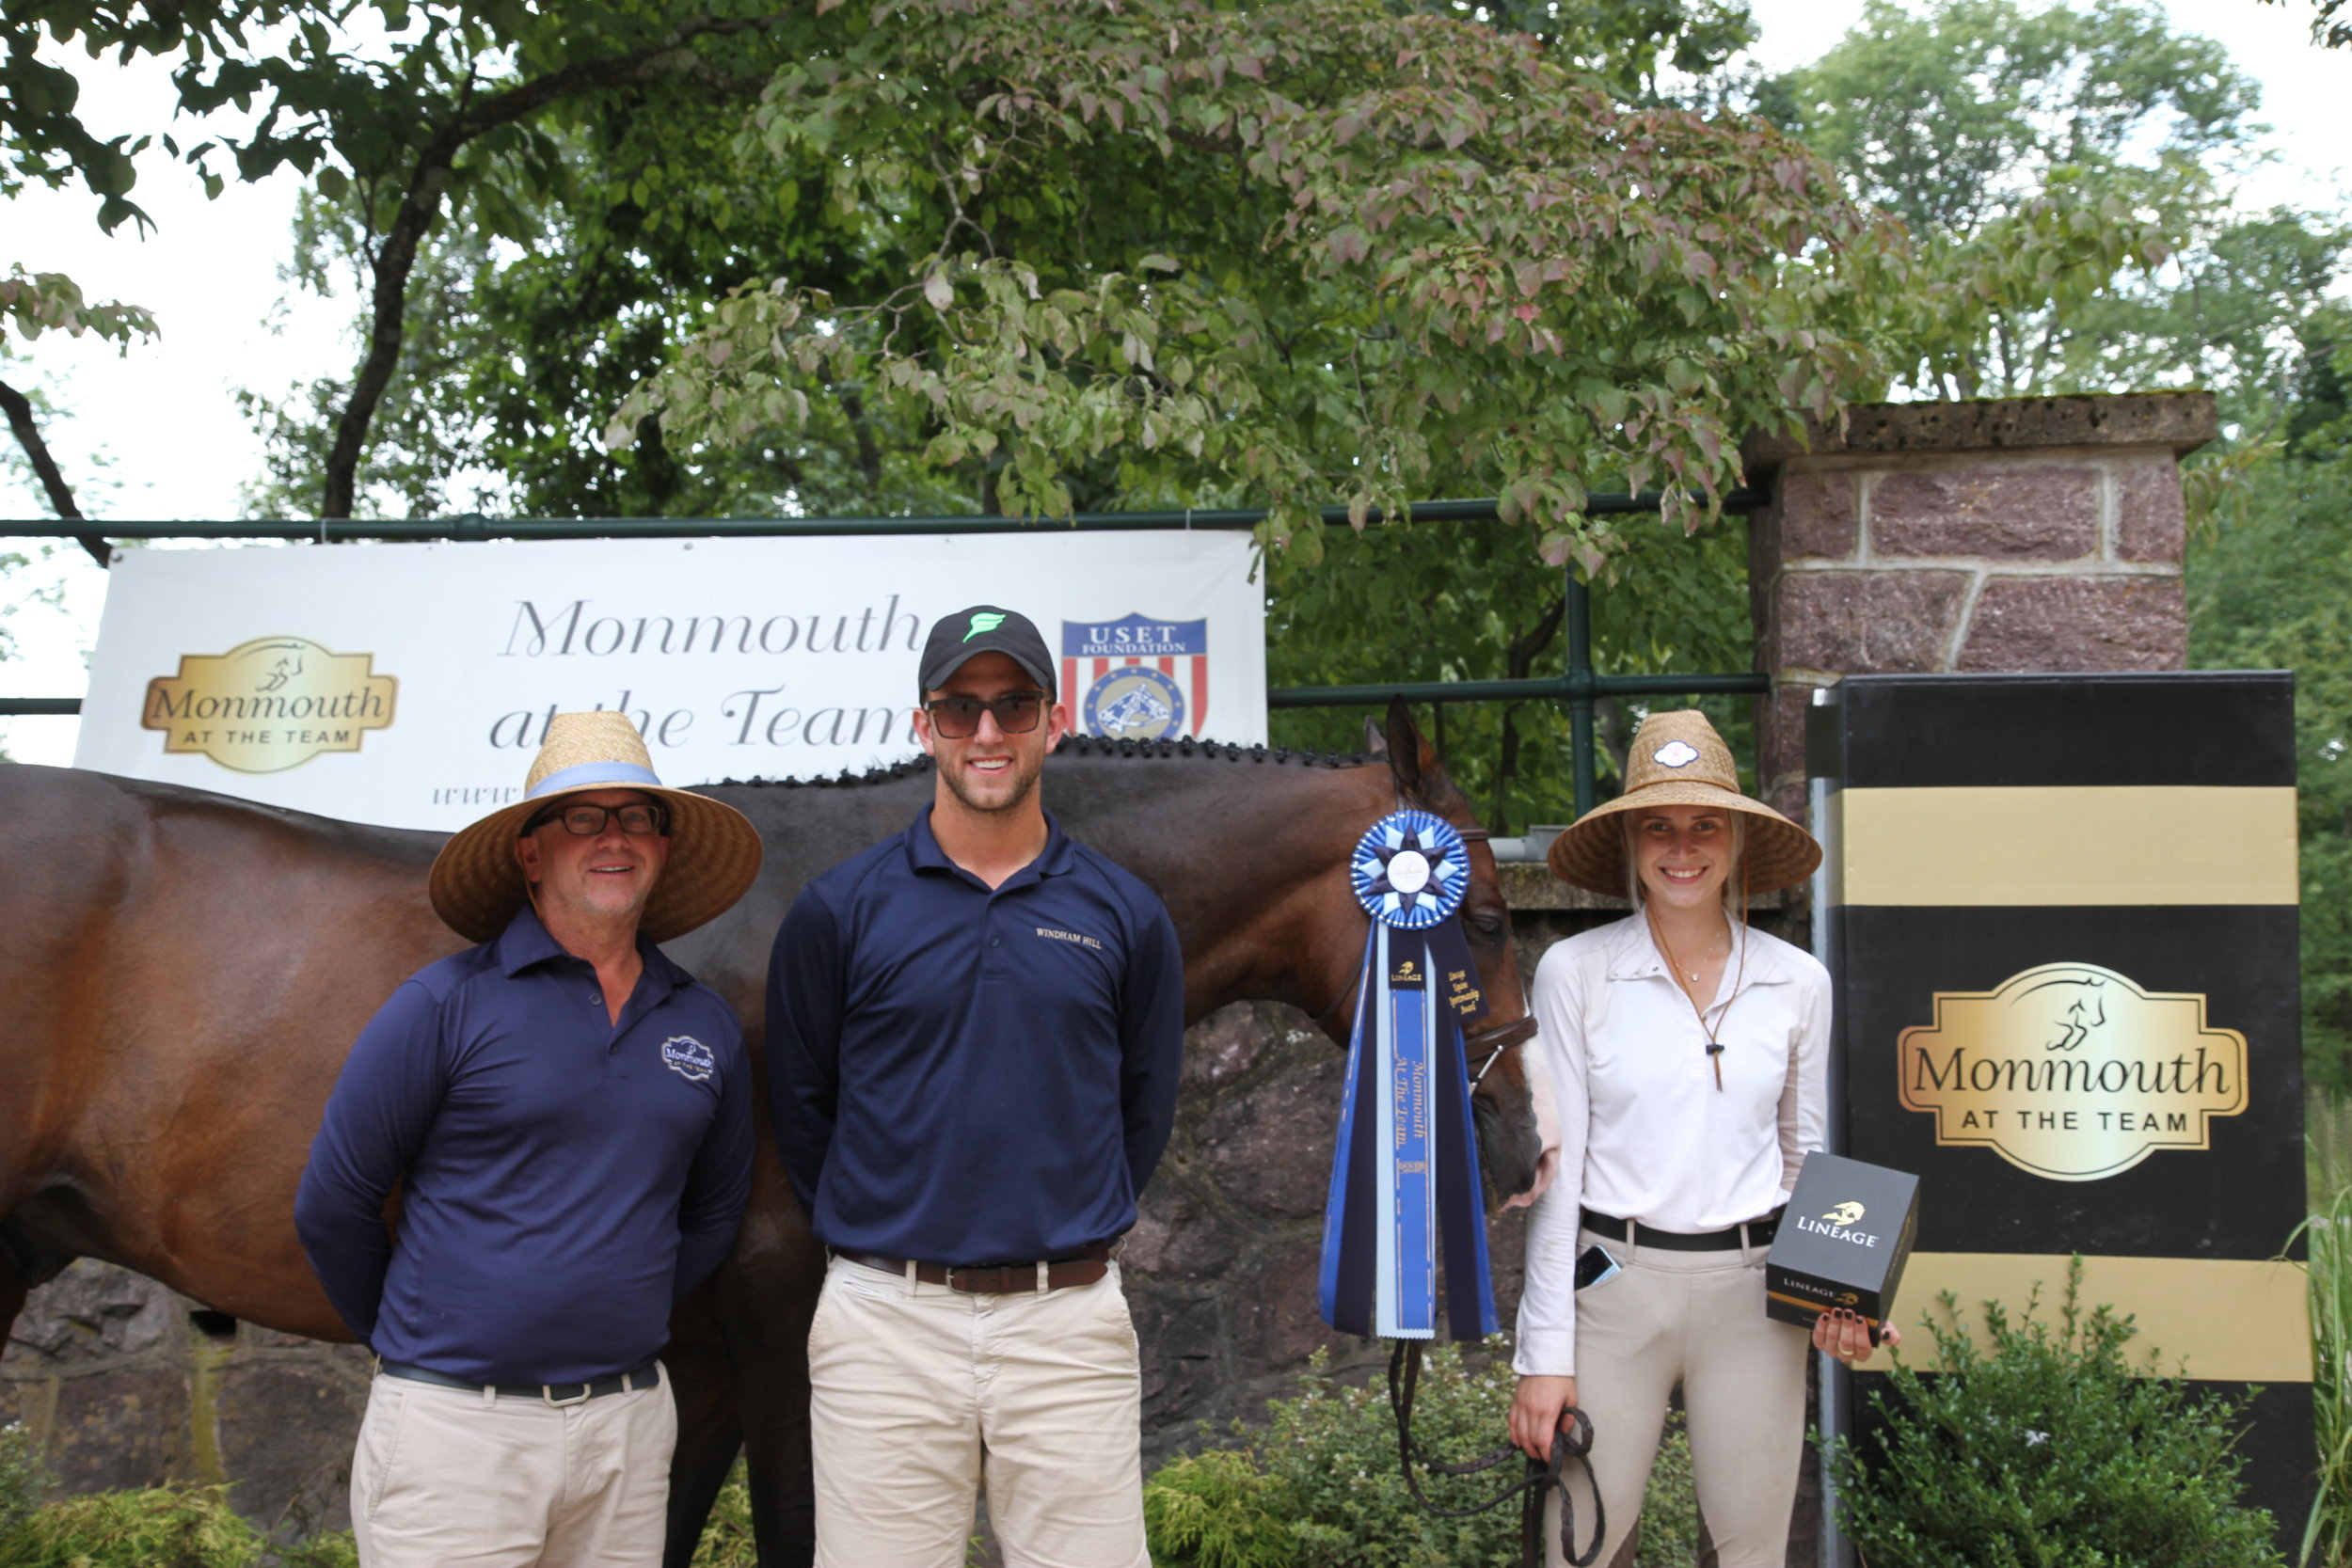 Madison Myro was presented with the Lineage Sportsmanship Award and went home with a new pair of Lineage stirrups. Myro accepted the award wiith her Windham Hill trainers Michael Dowling and Michael Meyers. Photo by EQ Media